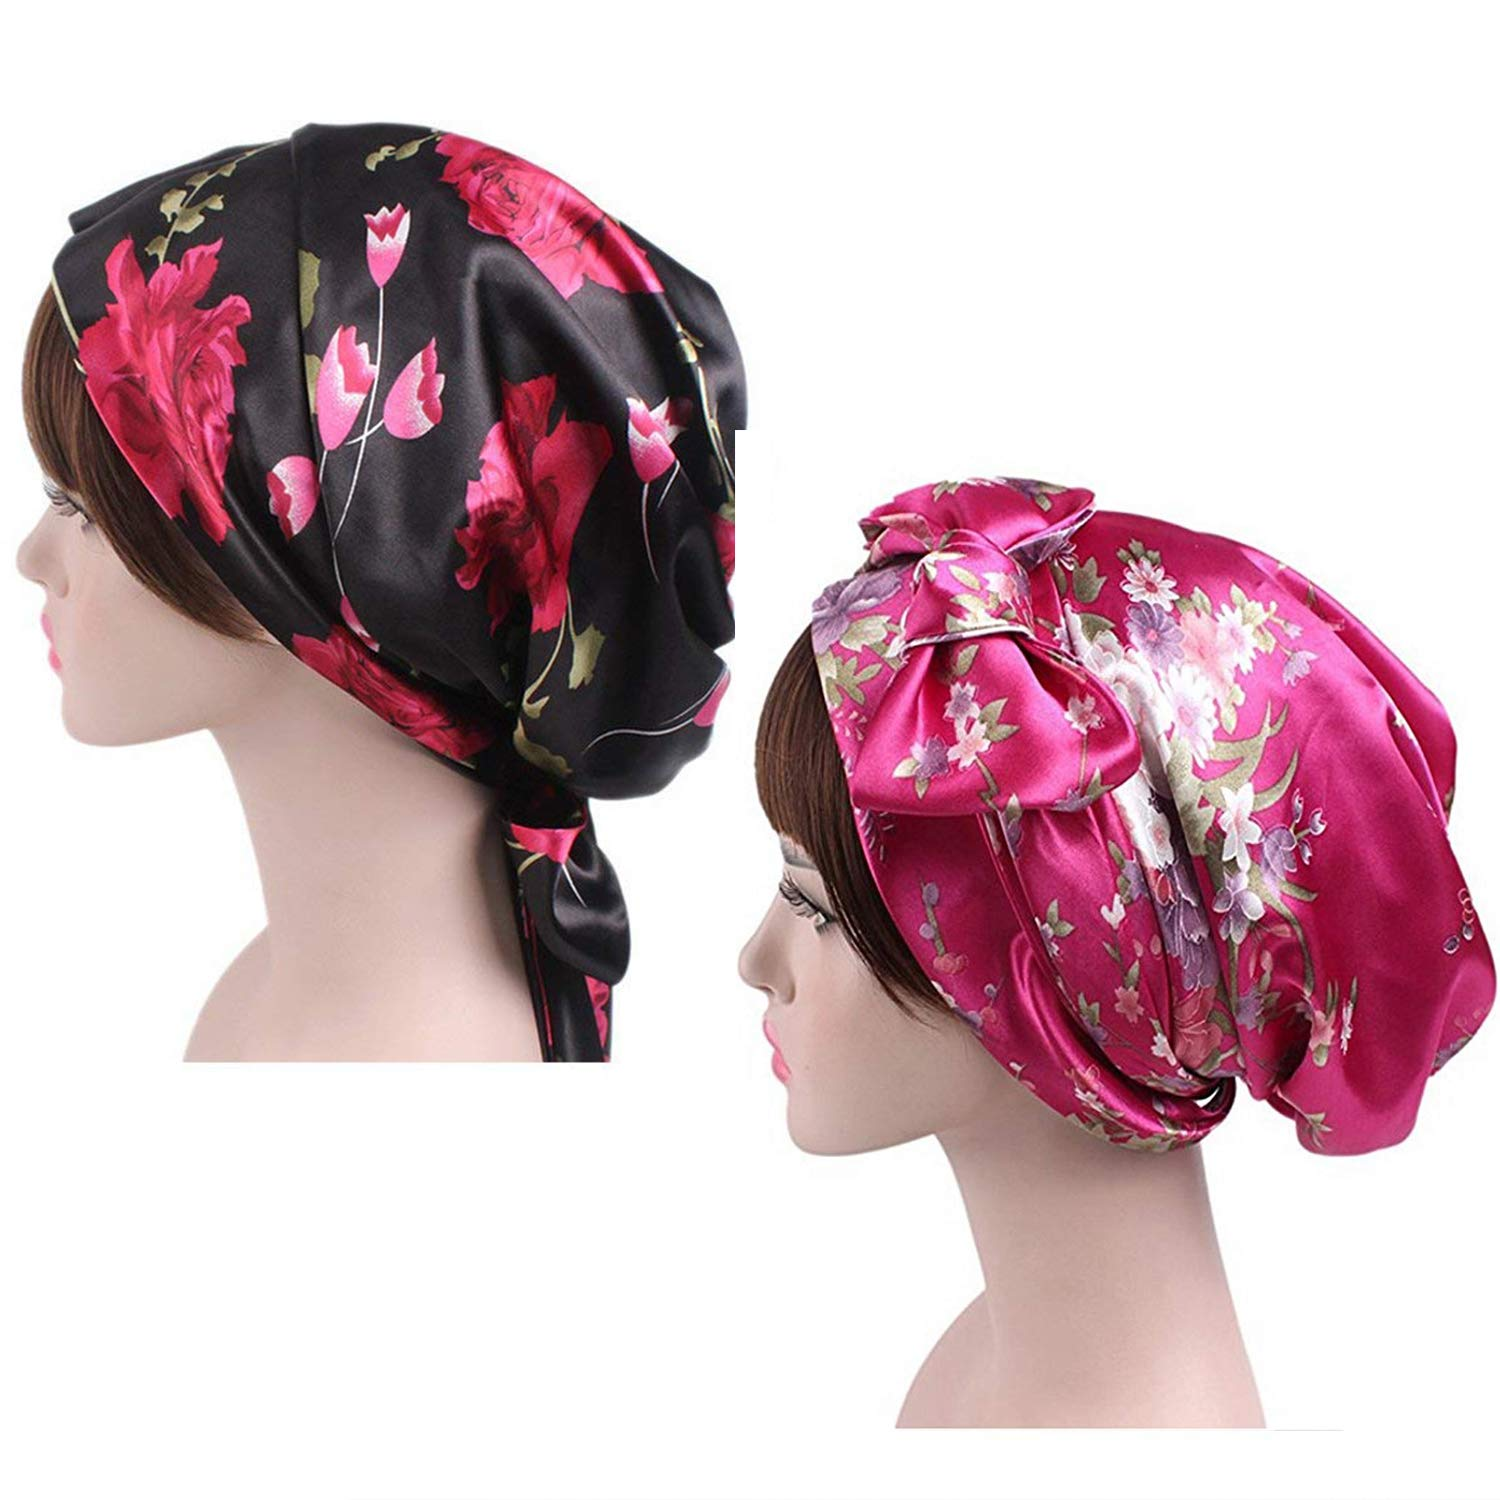 0cf63f28590 ✿Excellent Material - Zando headscarf made of high grade silk-like fabric  which is smooth